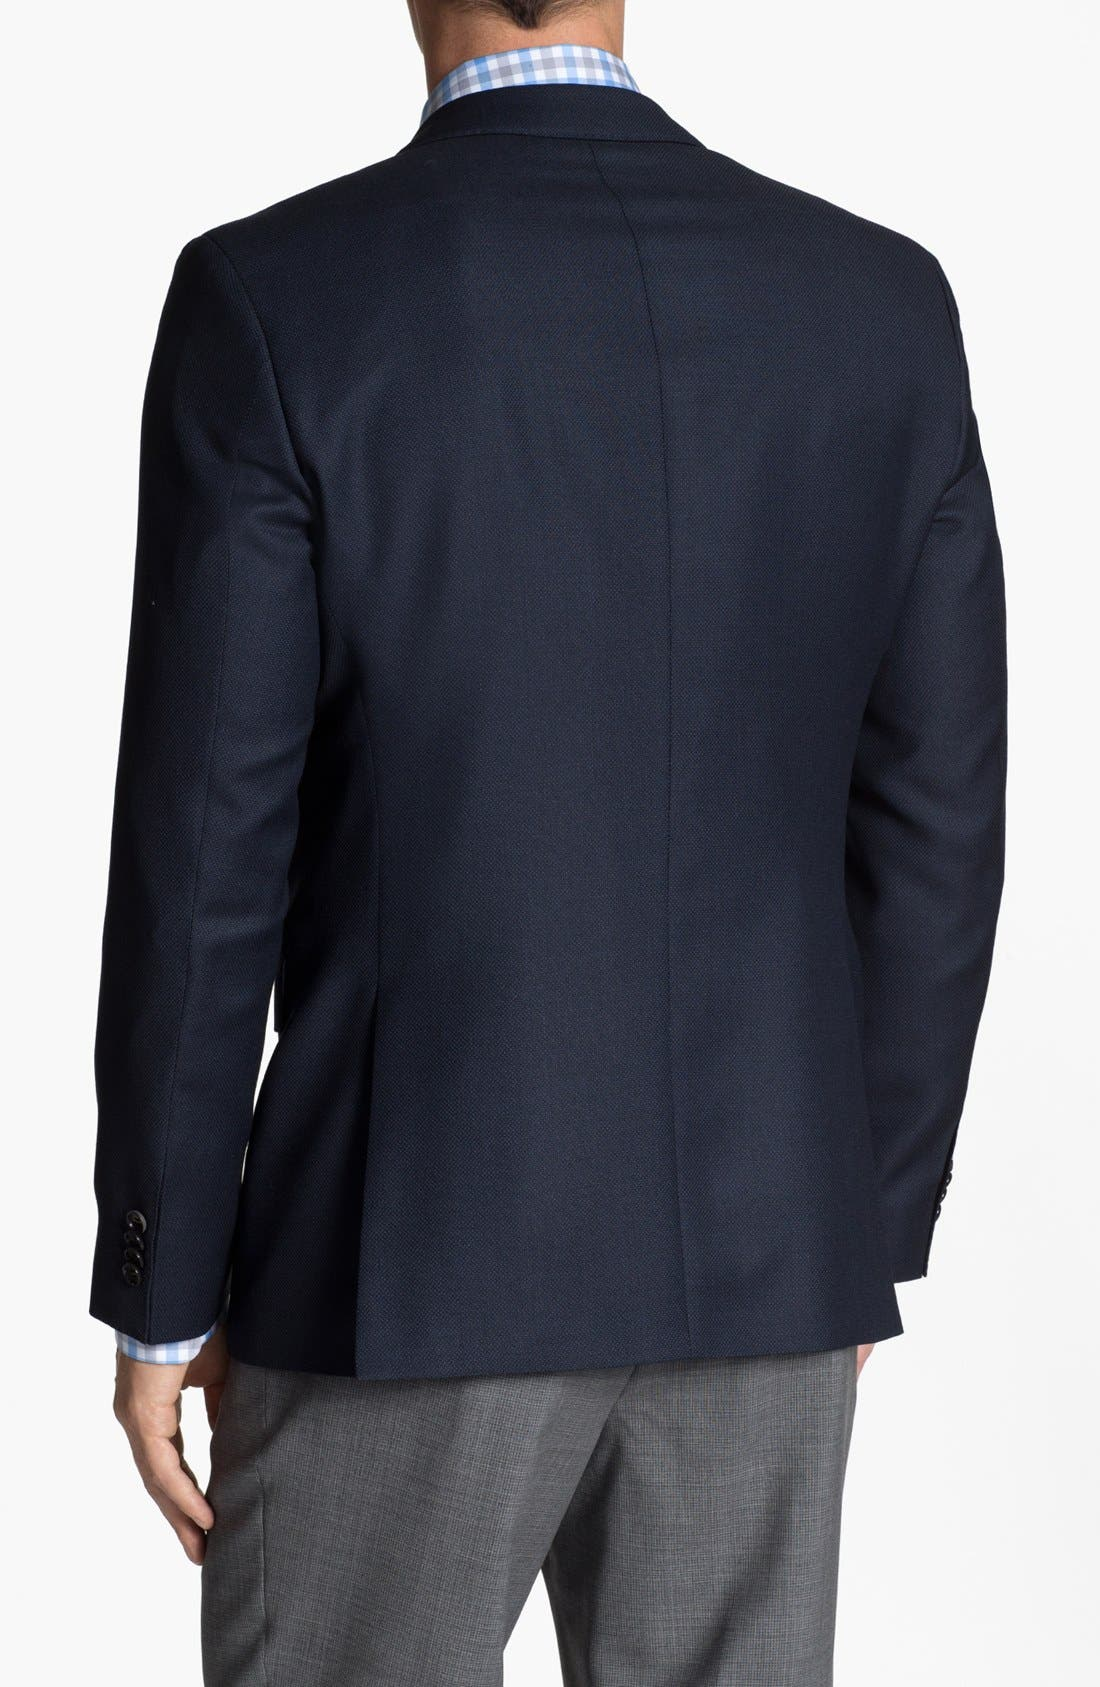 Alternate Image 3  - BOSS HUGO BOSS 'James' Trim Fit Wool Blazer